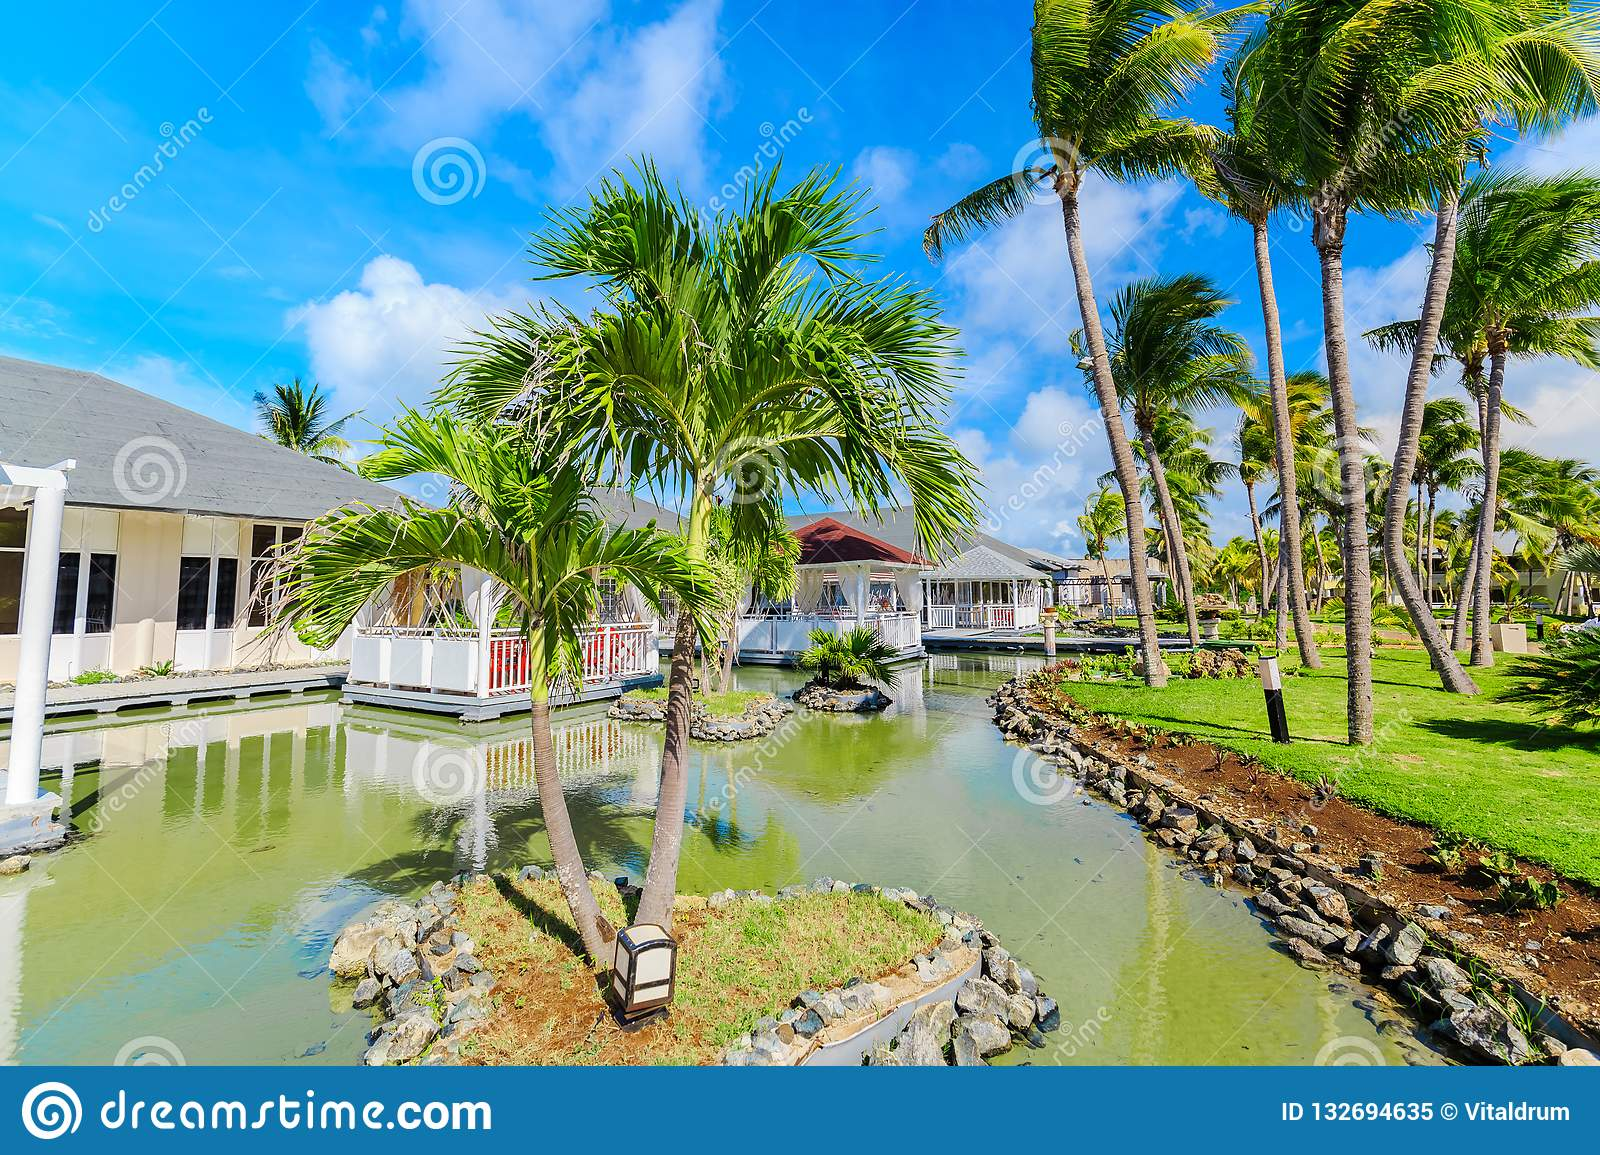 Natural Landscape View Of Resort Grounds And Restaurant Buildings In Tropical Garden Surrounded By Water On Sunny Gorgeous Day B Editorial Image Image Of Relaxing Paradisus 132694635